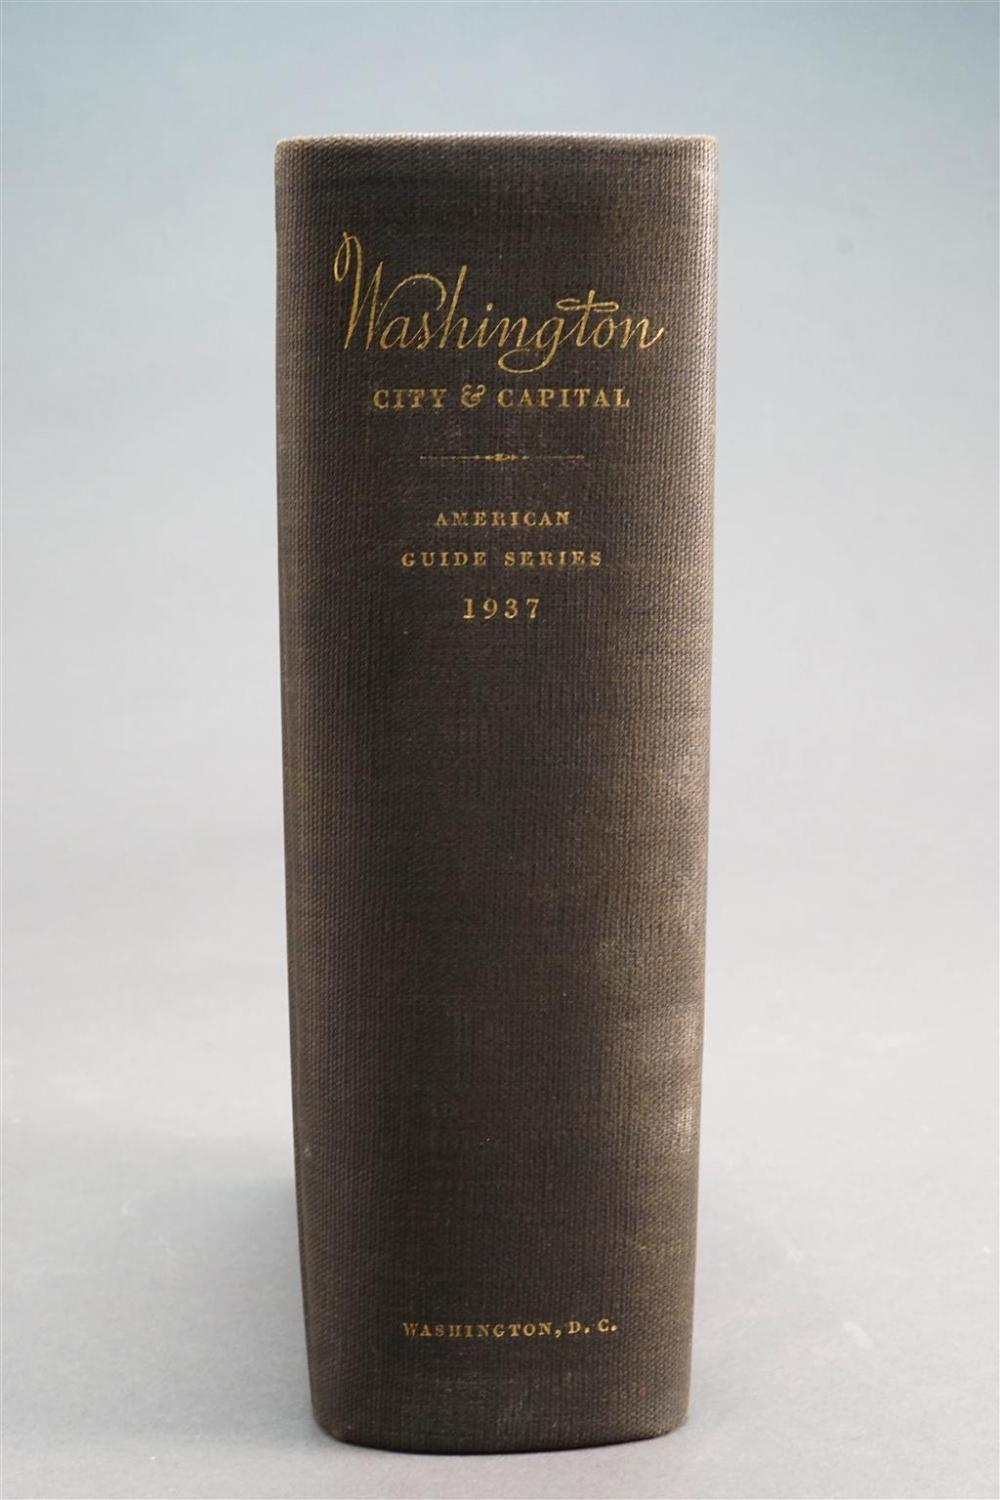 Washington City and Capital, American Guide Series, 1937, One Volume